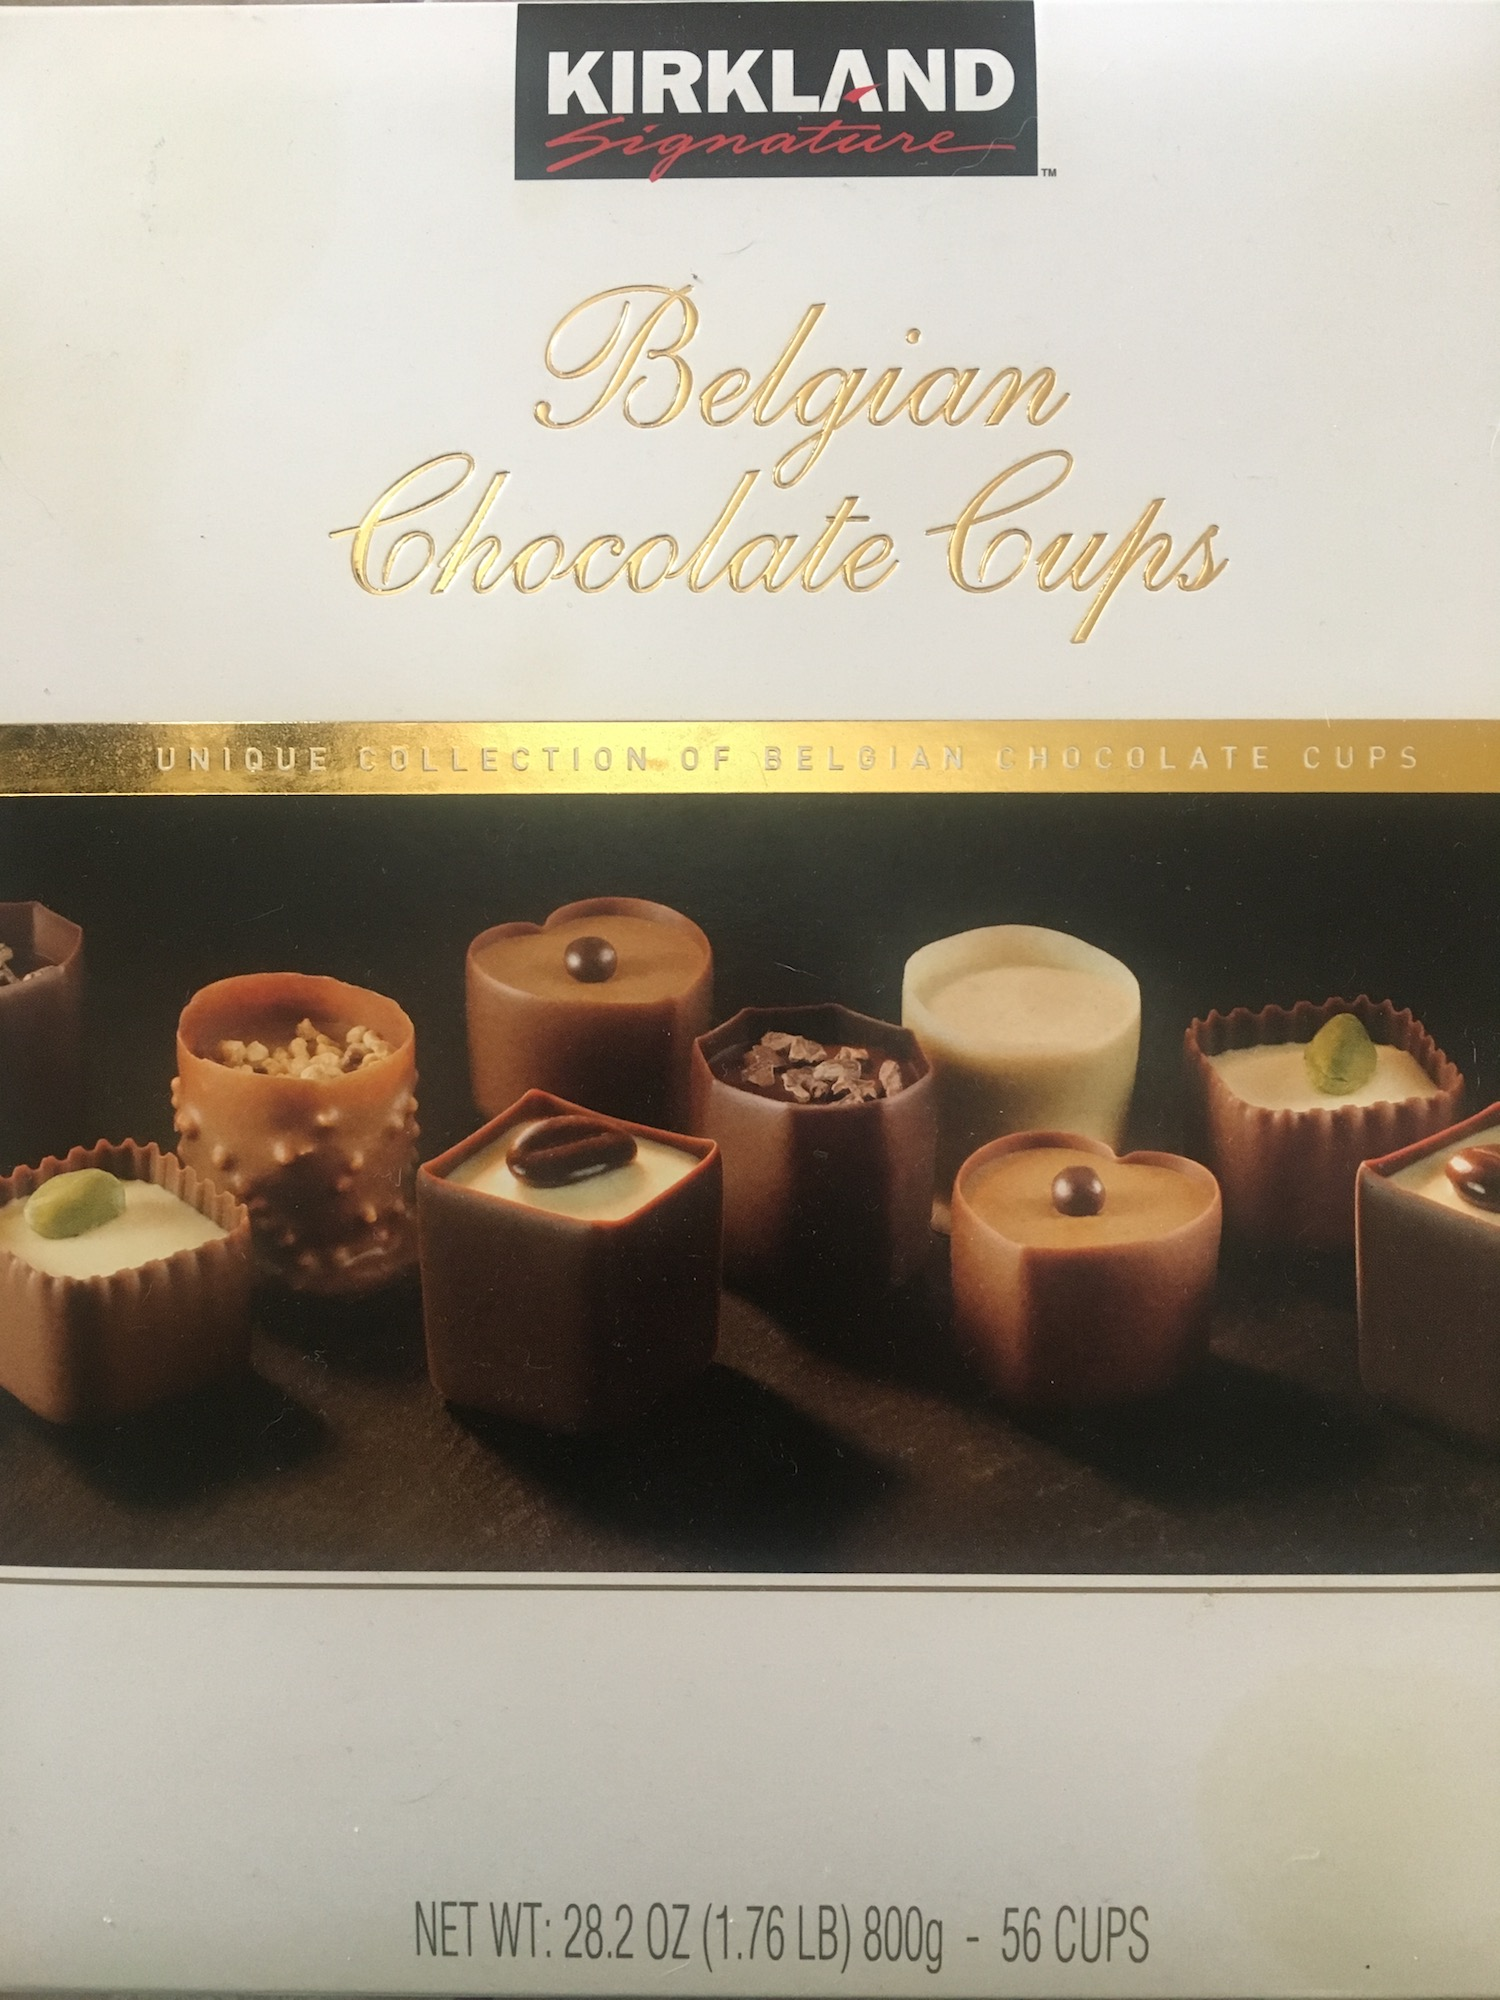 Packaging copy for Kirkland Belgian Chocolate Cups